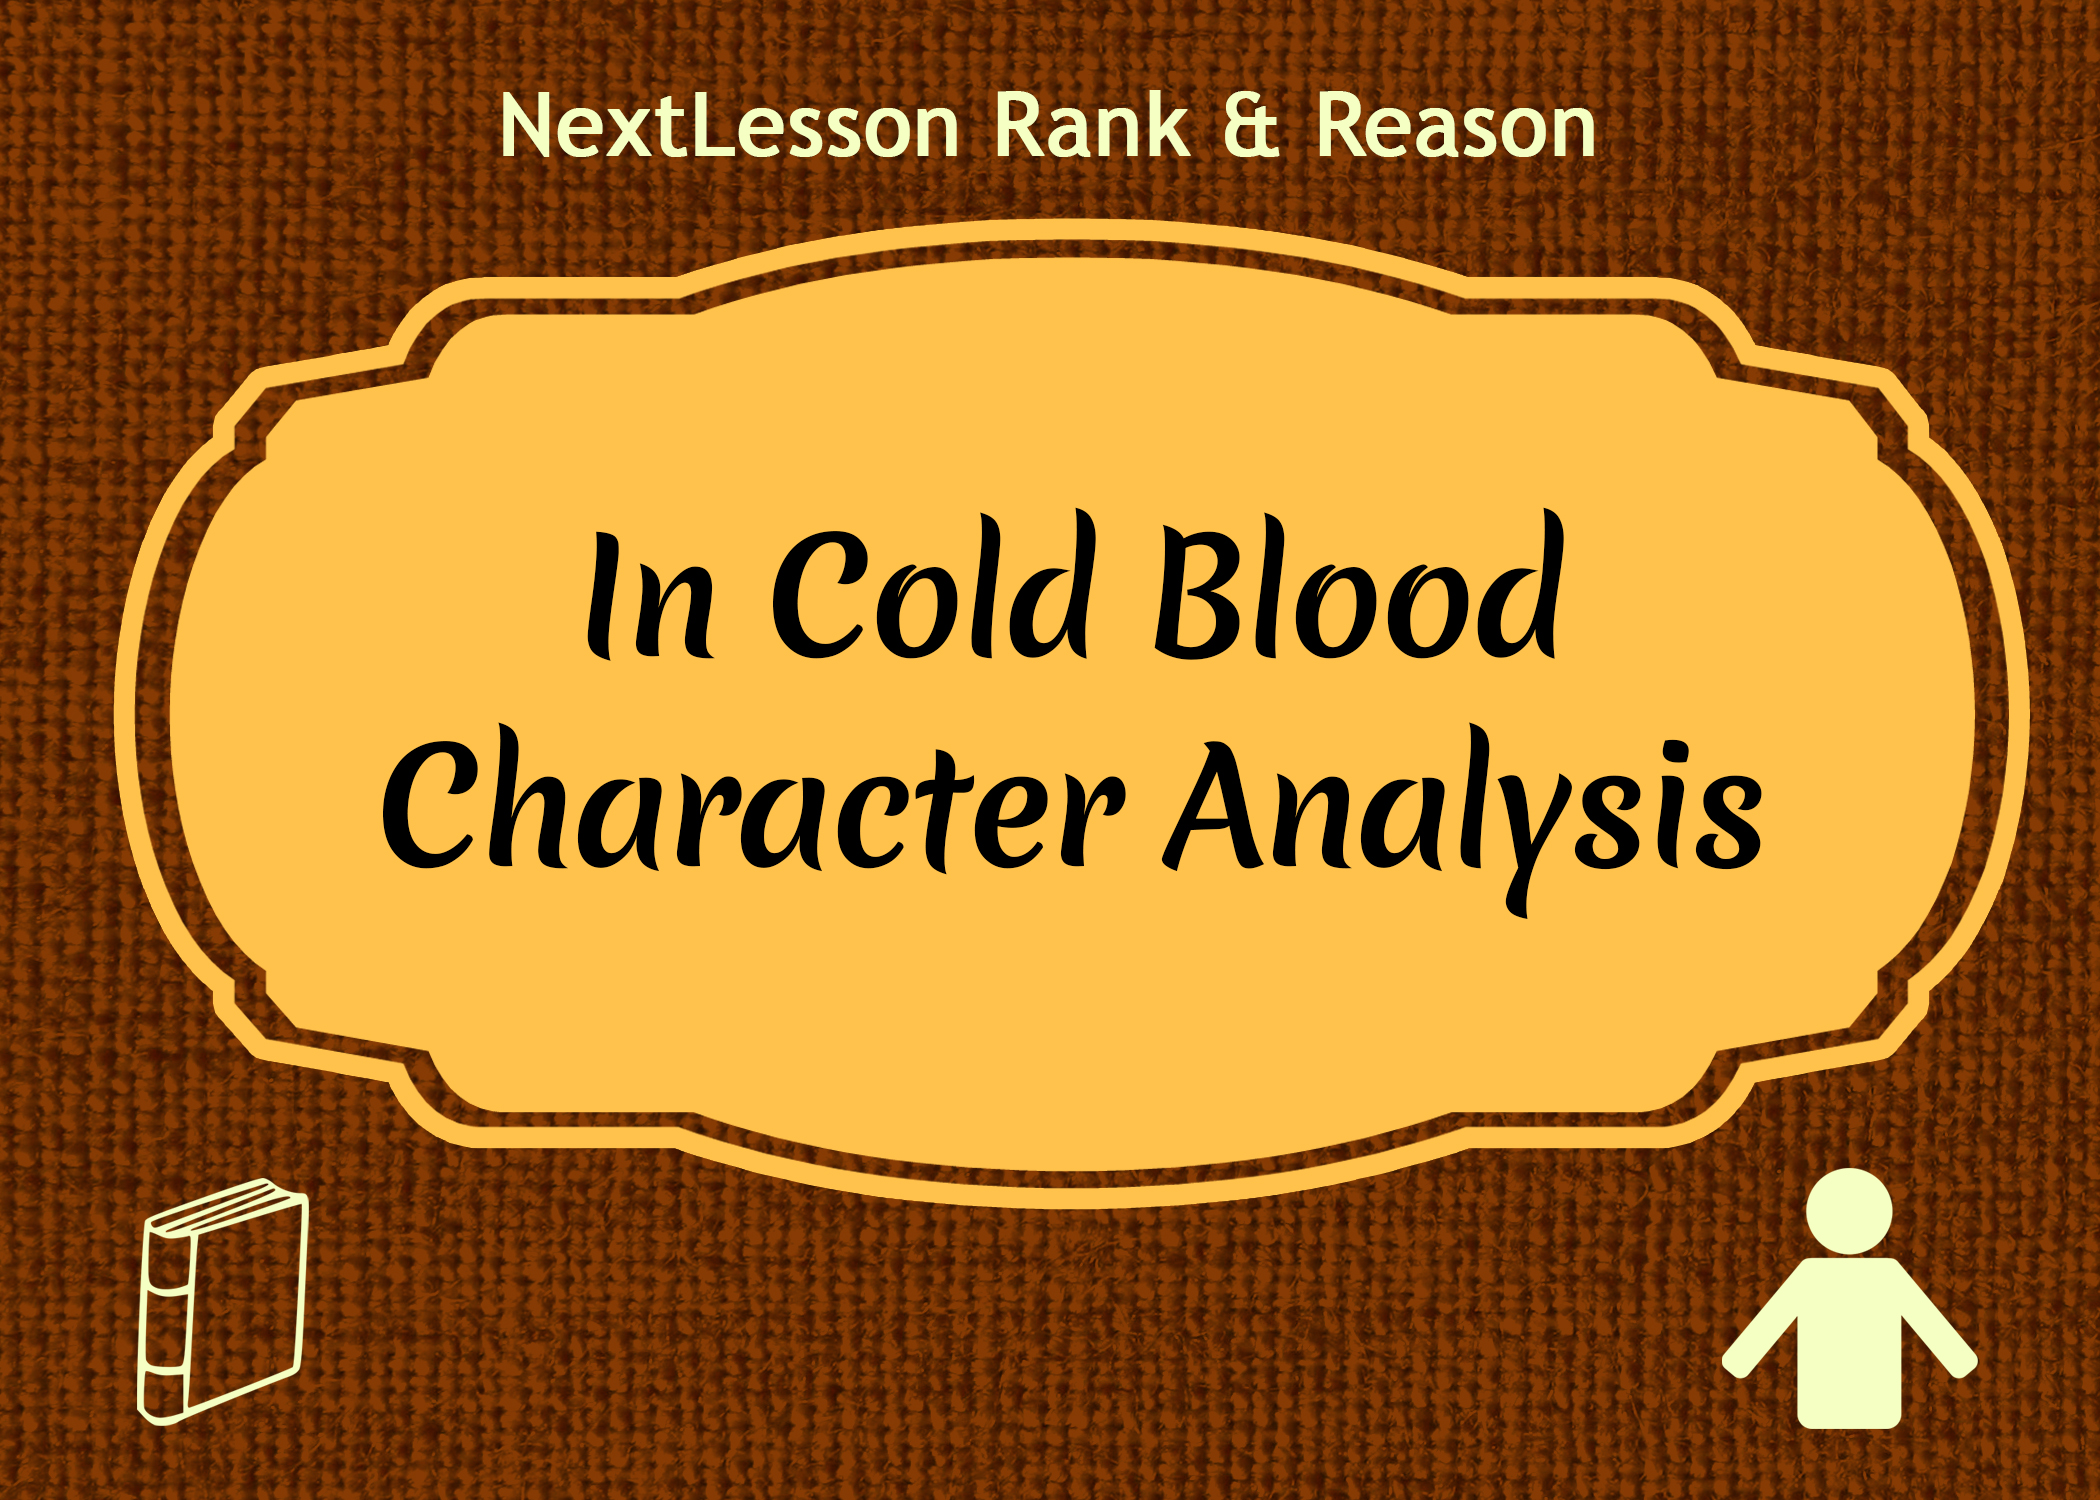 in cold blood essay topics Cold working: topics by nbsp note: this page contains sample records for the topic cold working from  in northern idlib duringnegotiations may 2, 2012 in cold blood summary executions by syriancrimes against humanity in syria december 15footer menu keynote essays photos and.